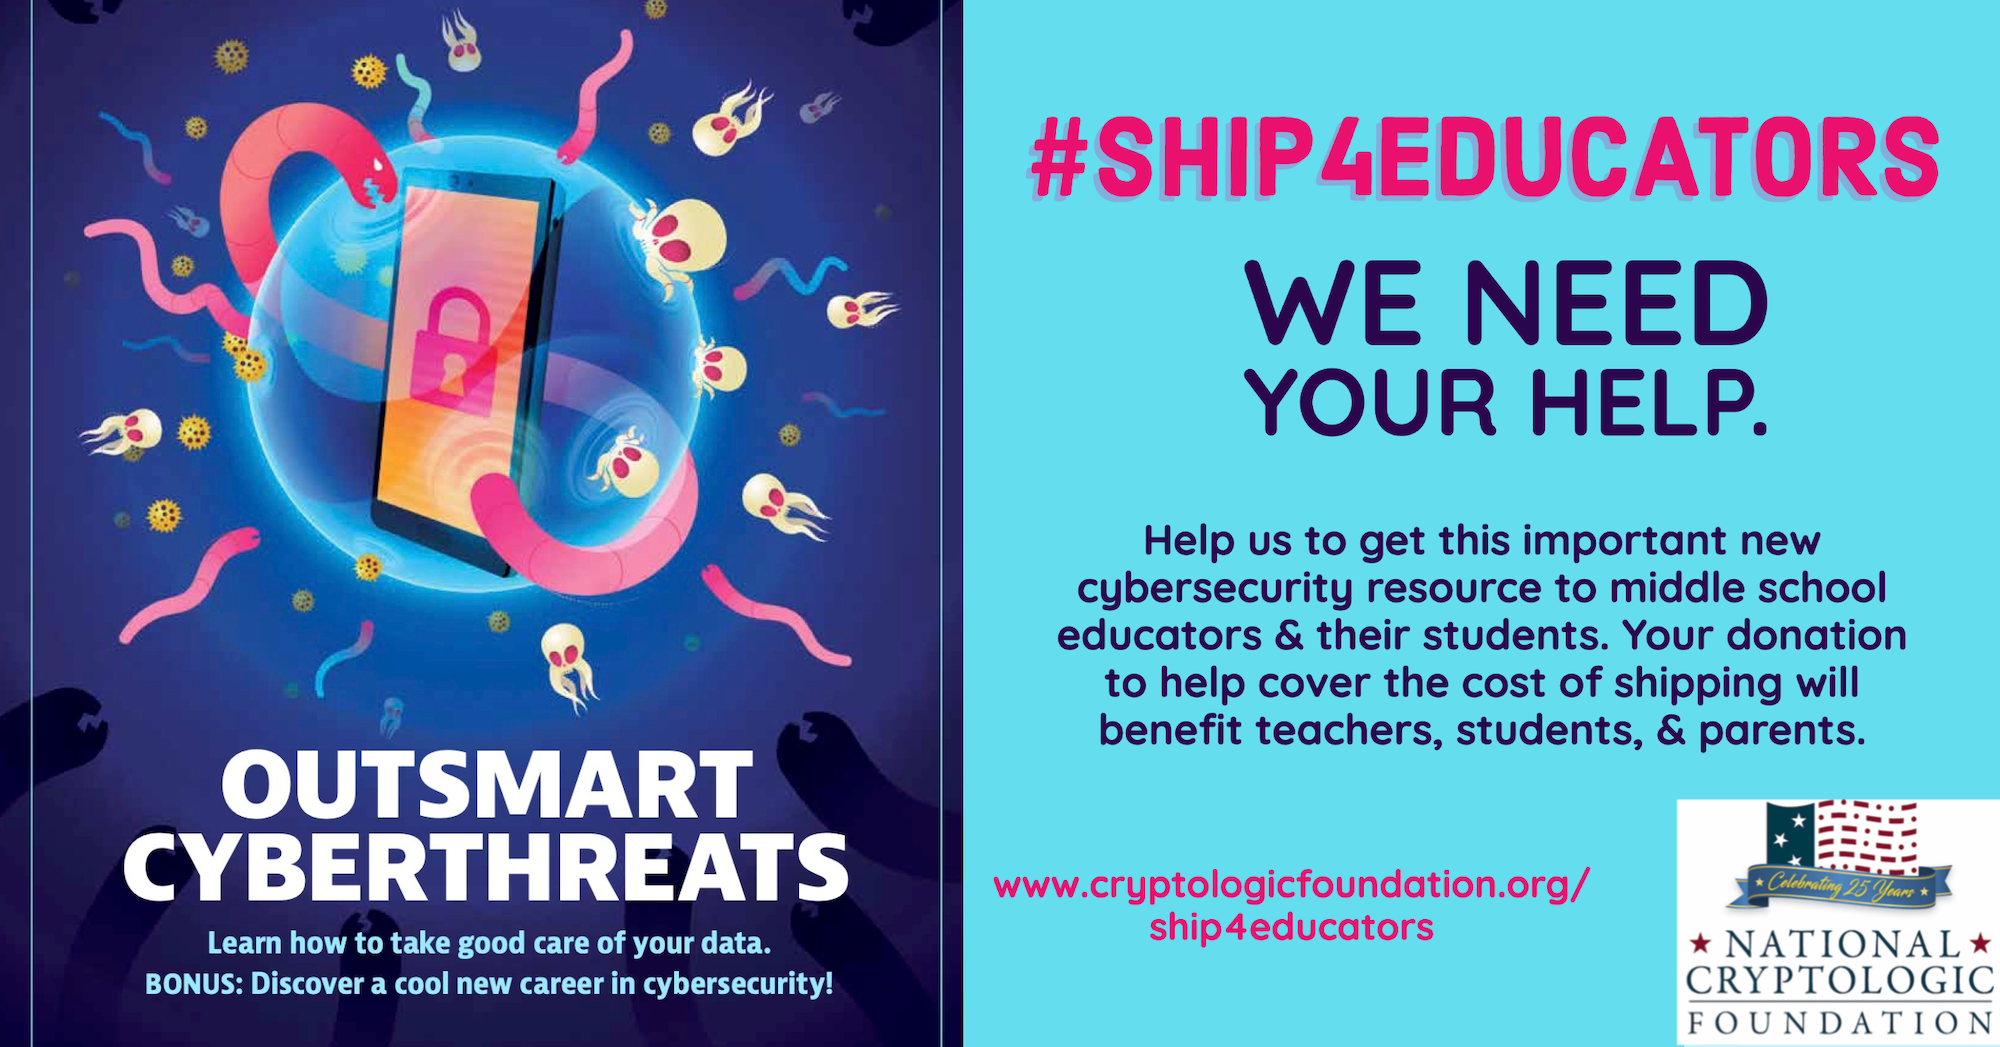 Shipping for Educators - Donate now